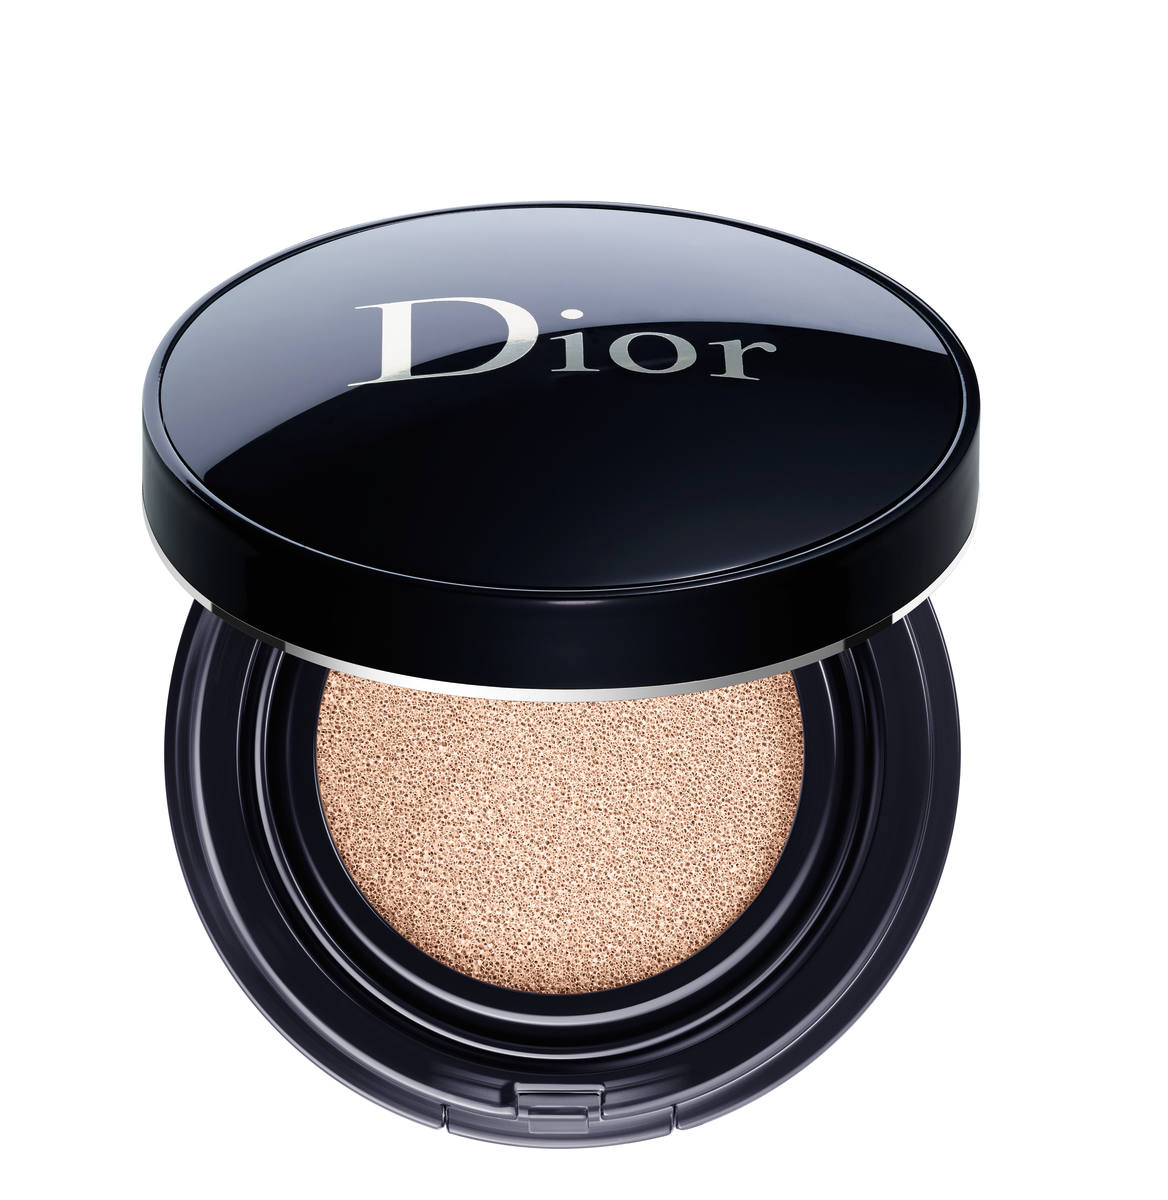 Dior forever perfect cushion